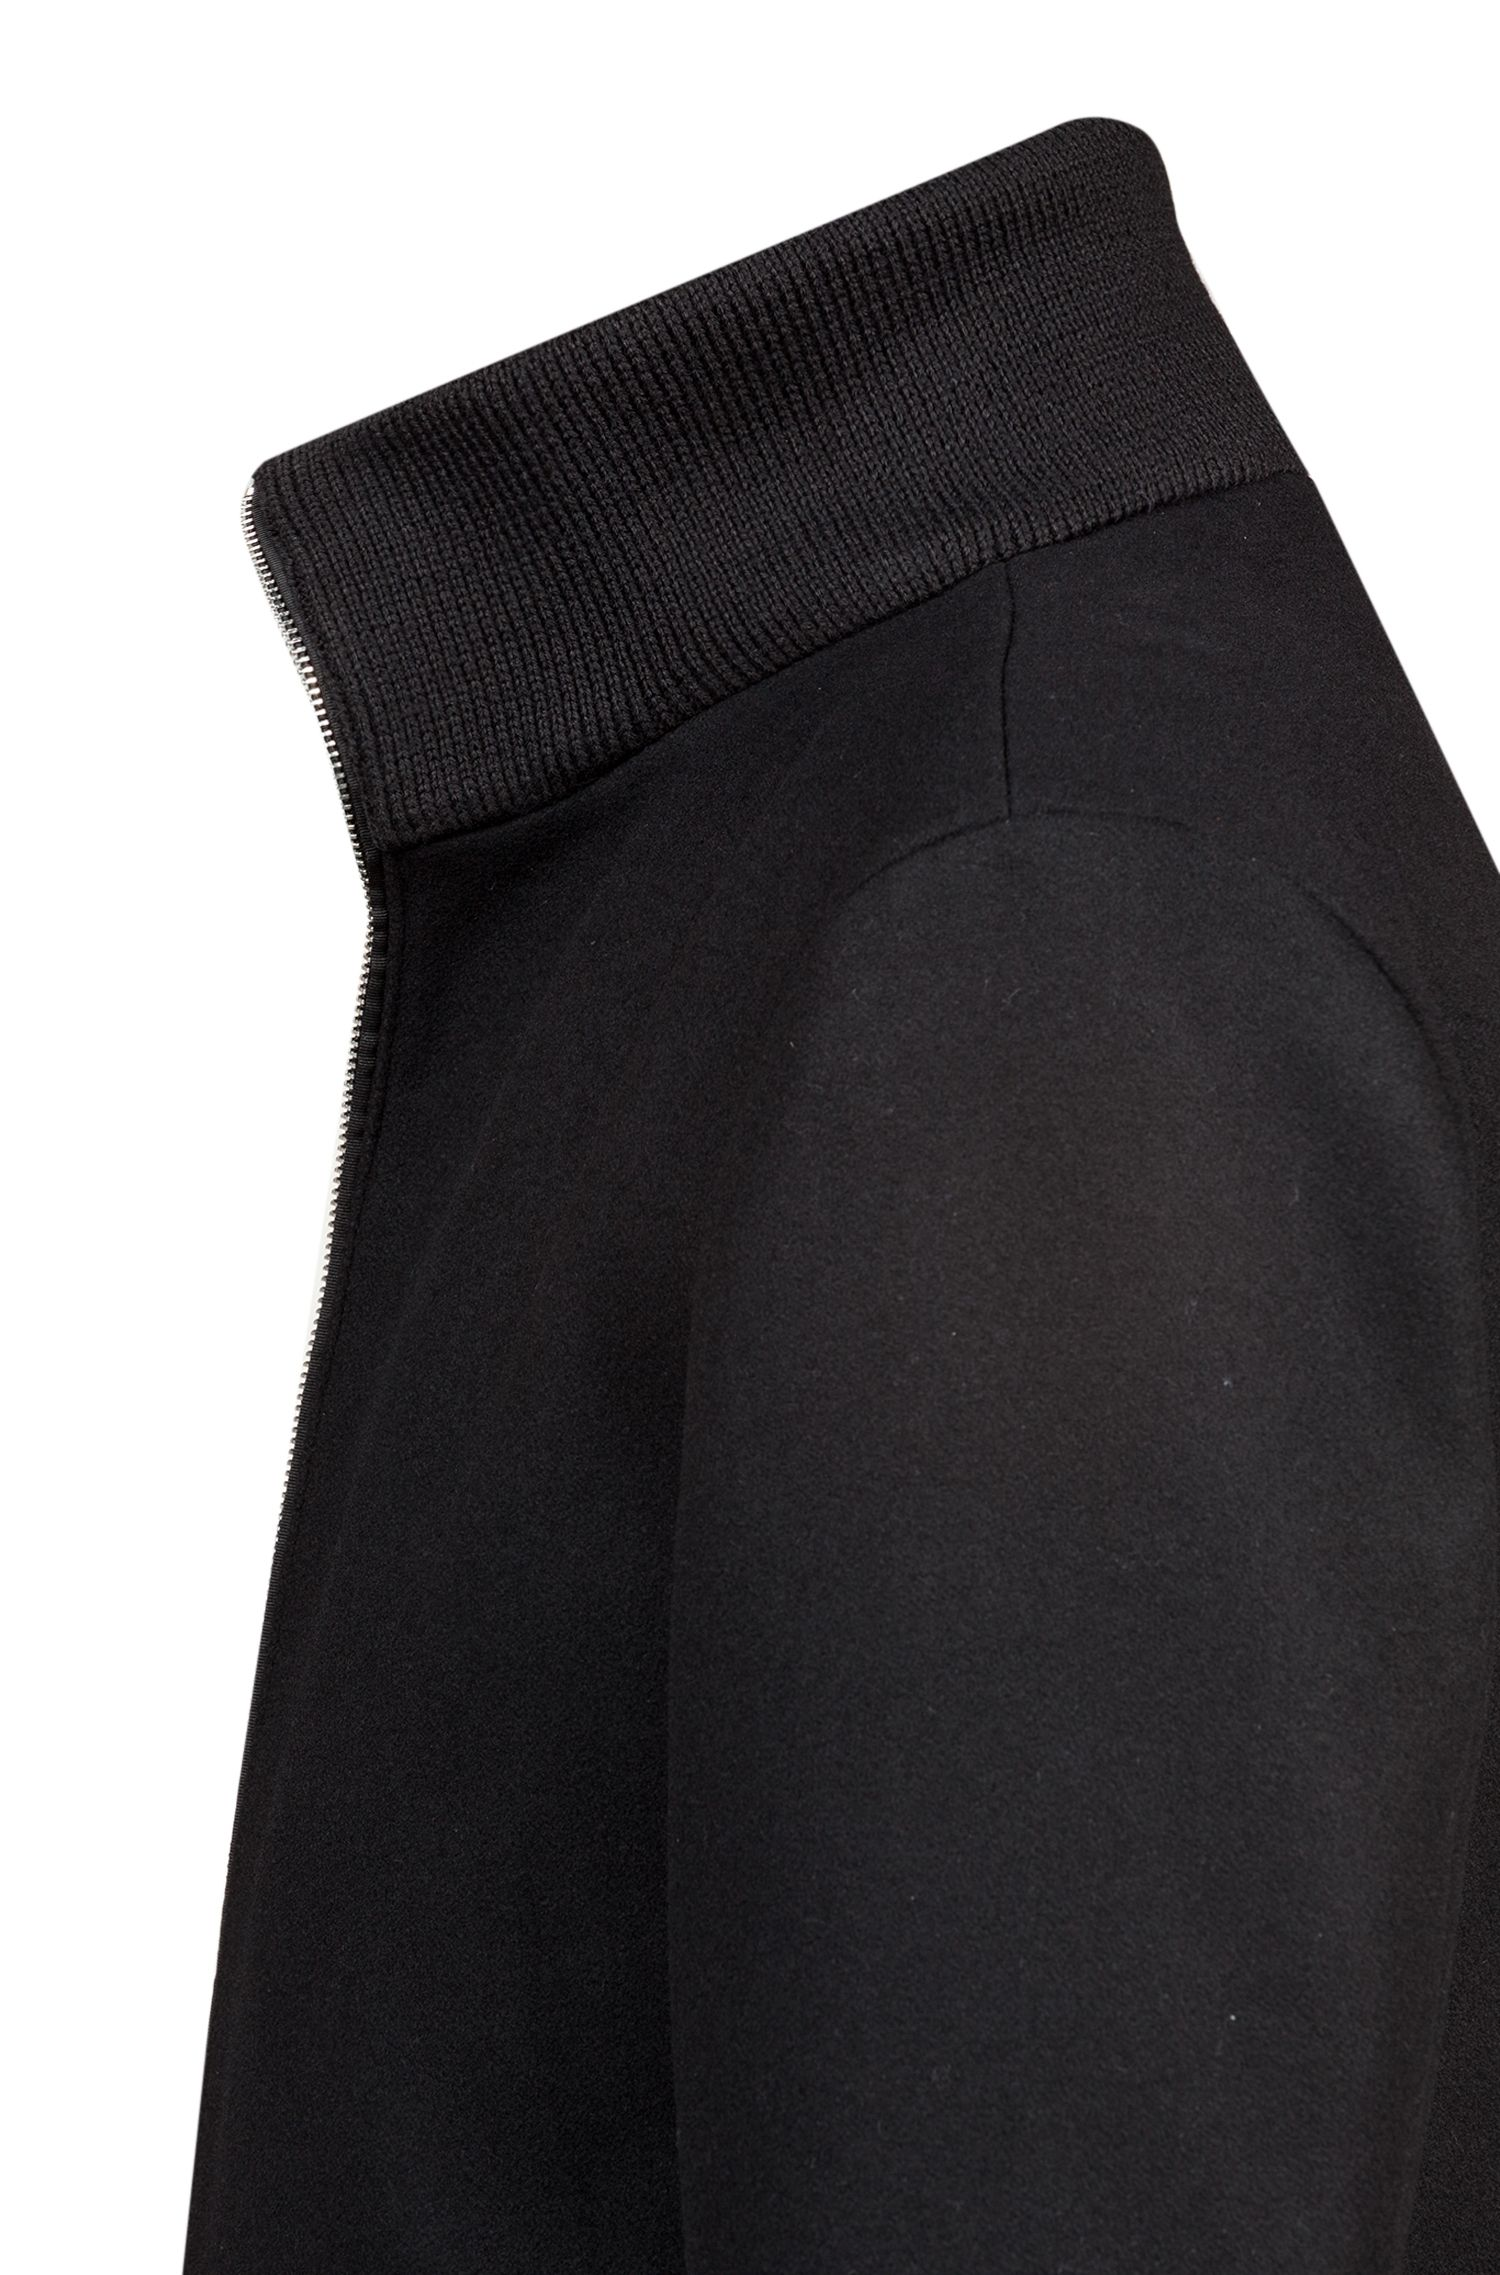 Wool-blend coat with zippered front, Black